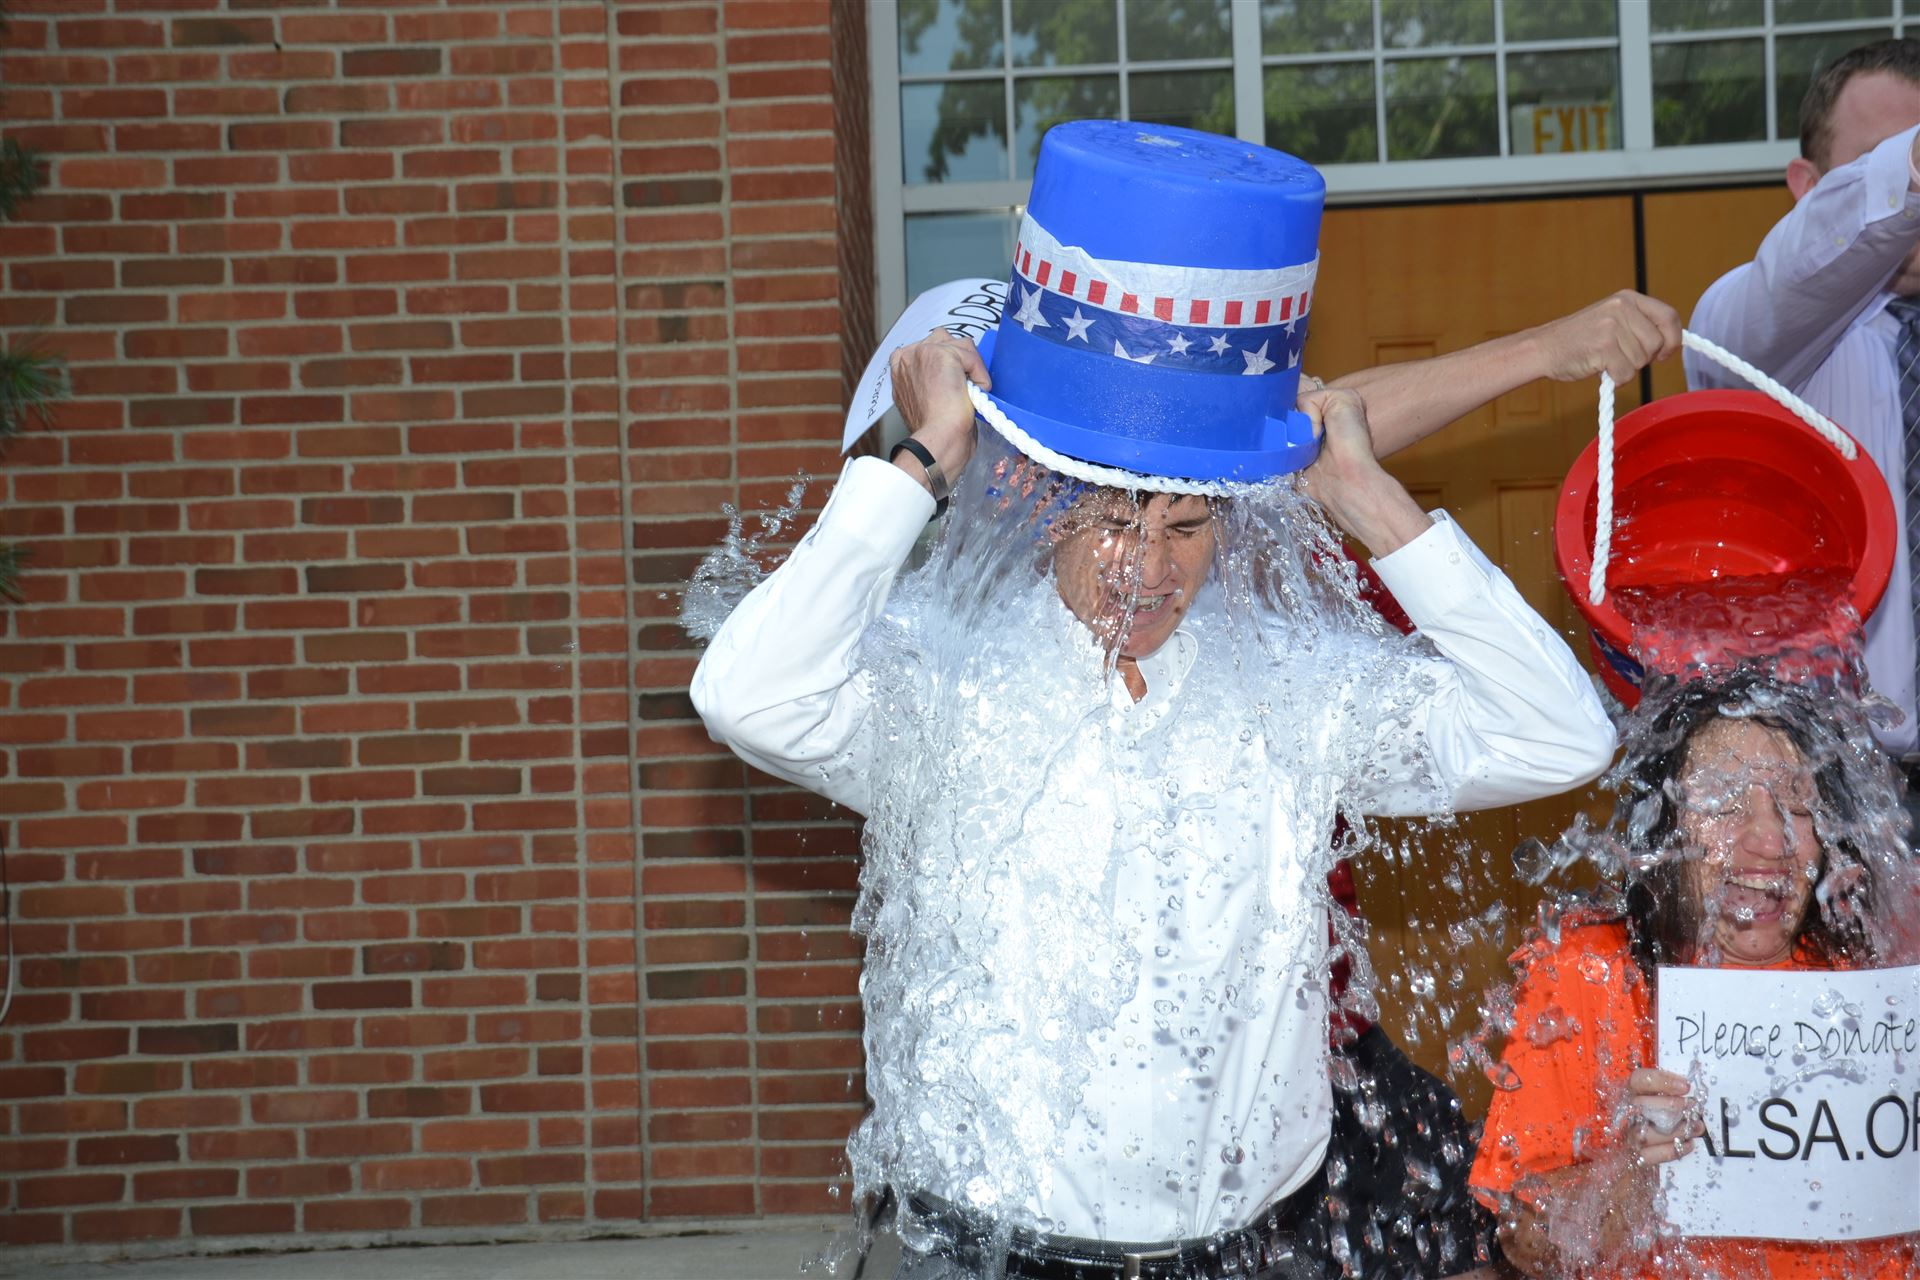 Dr. John Kellogg dumps a bucket of ice water over his head